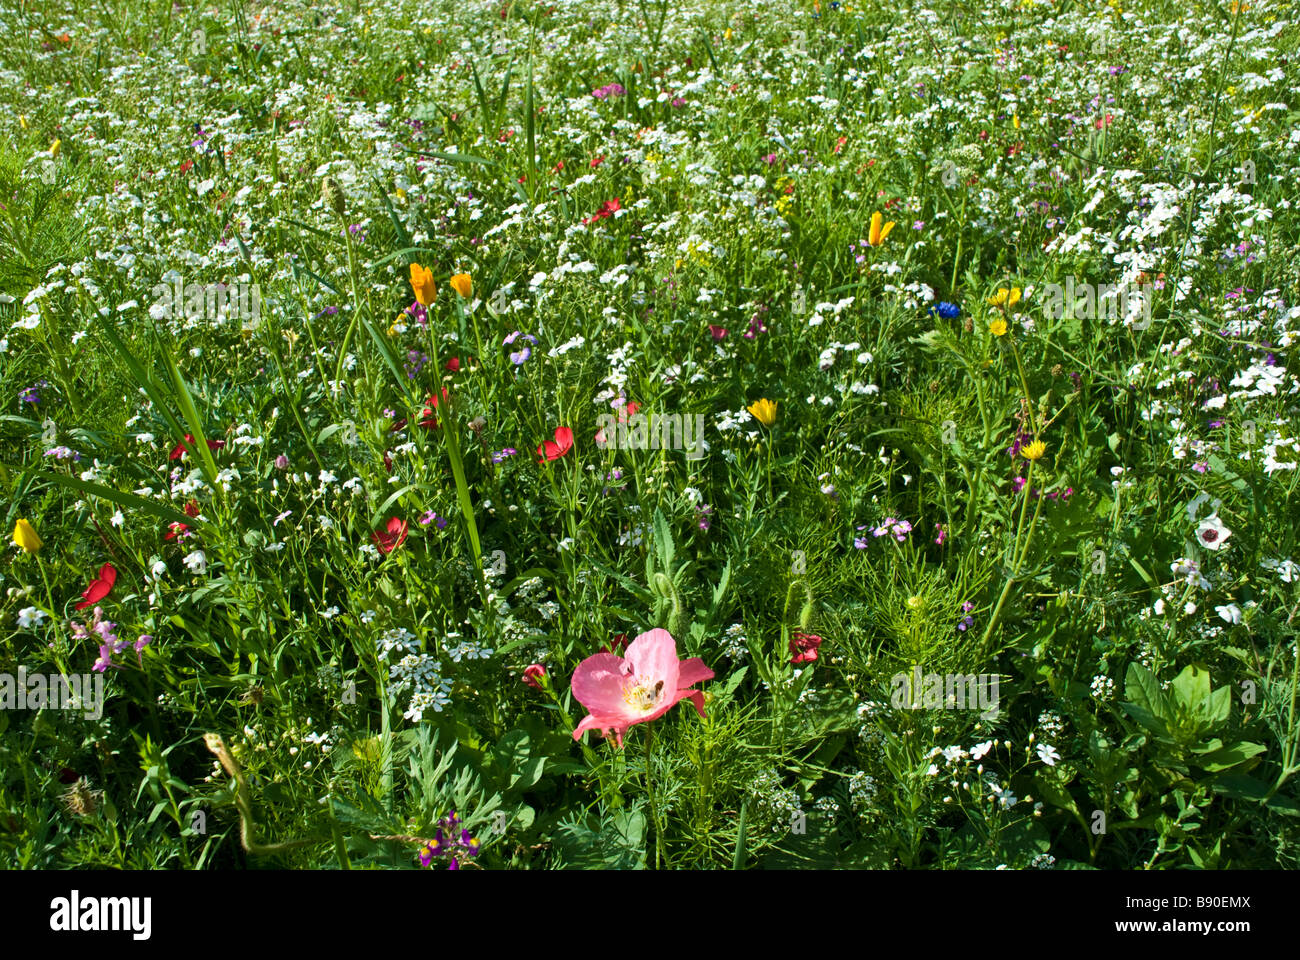 Meadow with colorful flowers like cornflowers and herbs | Wiese mit farbenfrohen Blumen und Kräutern - Stock Image